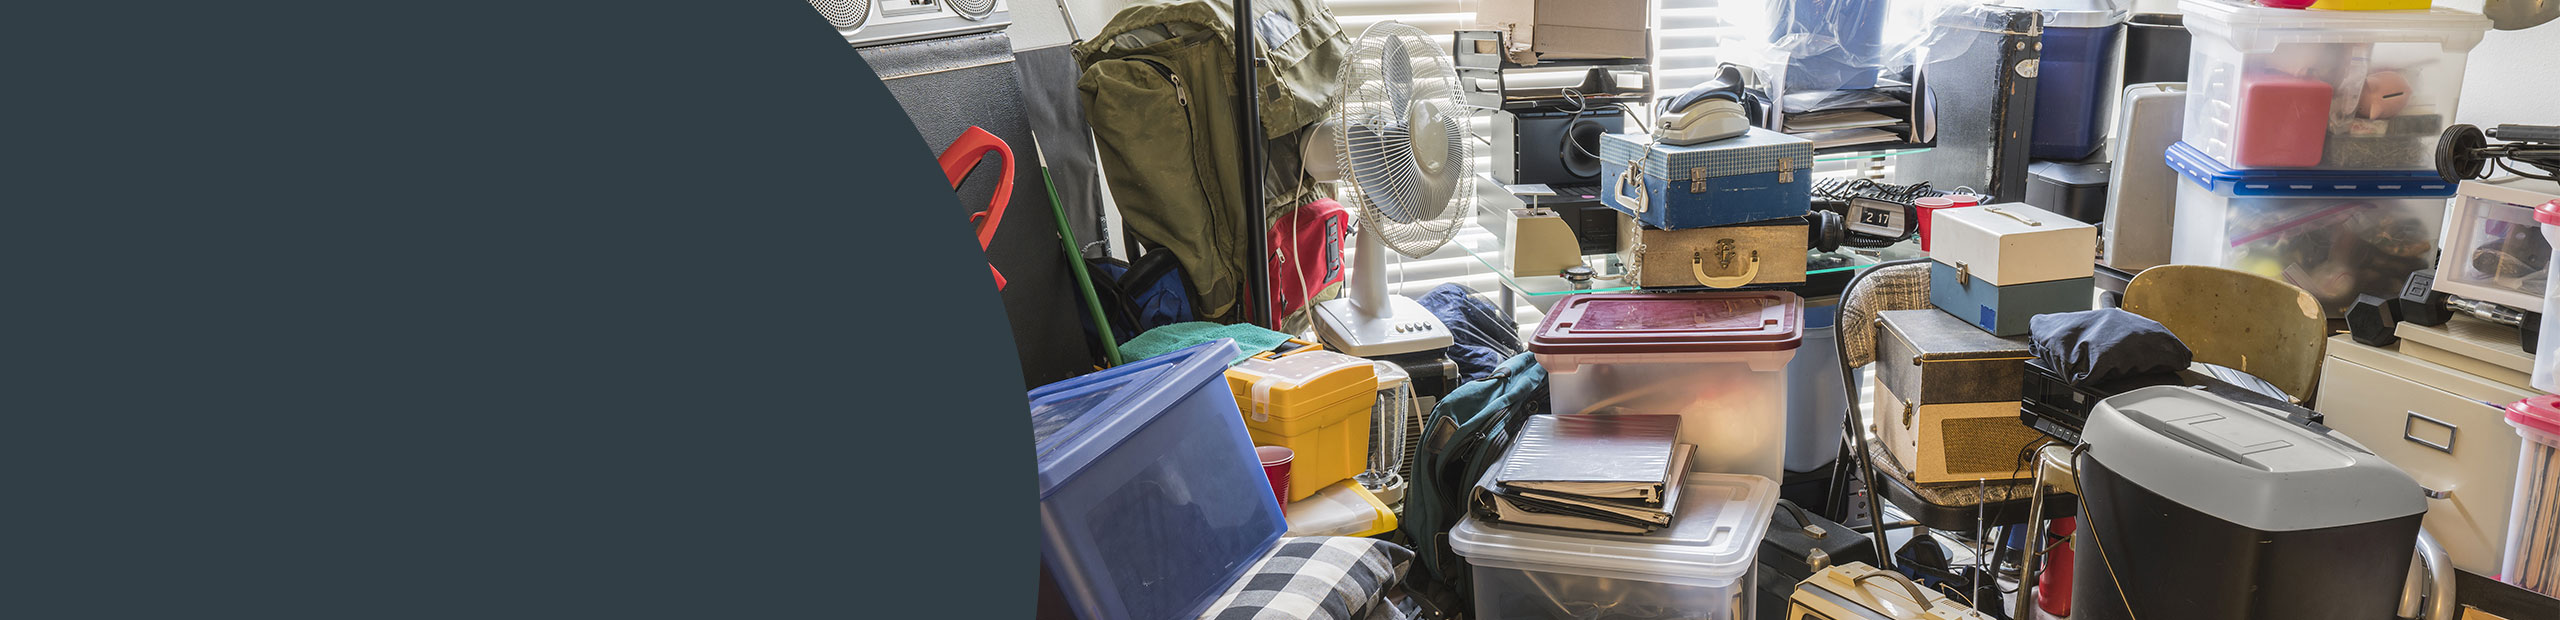 Hoarder Clean Up